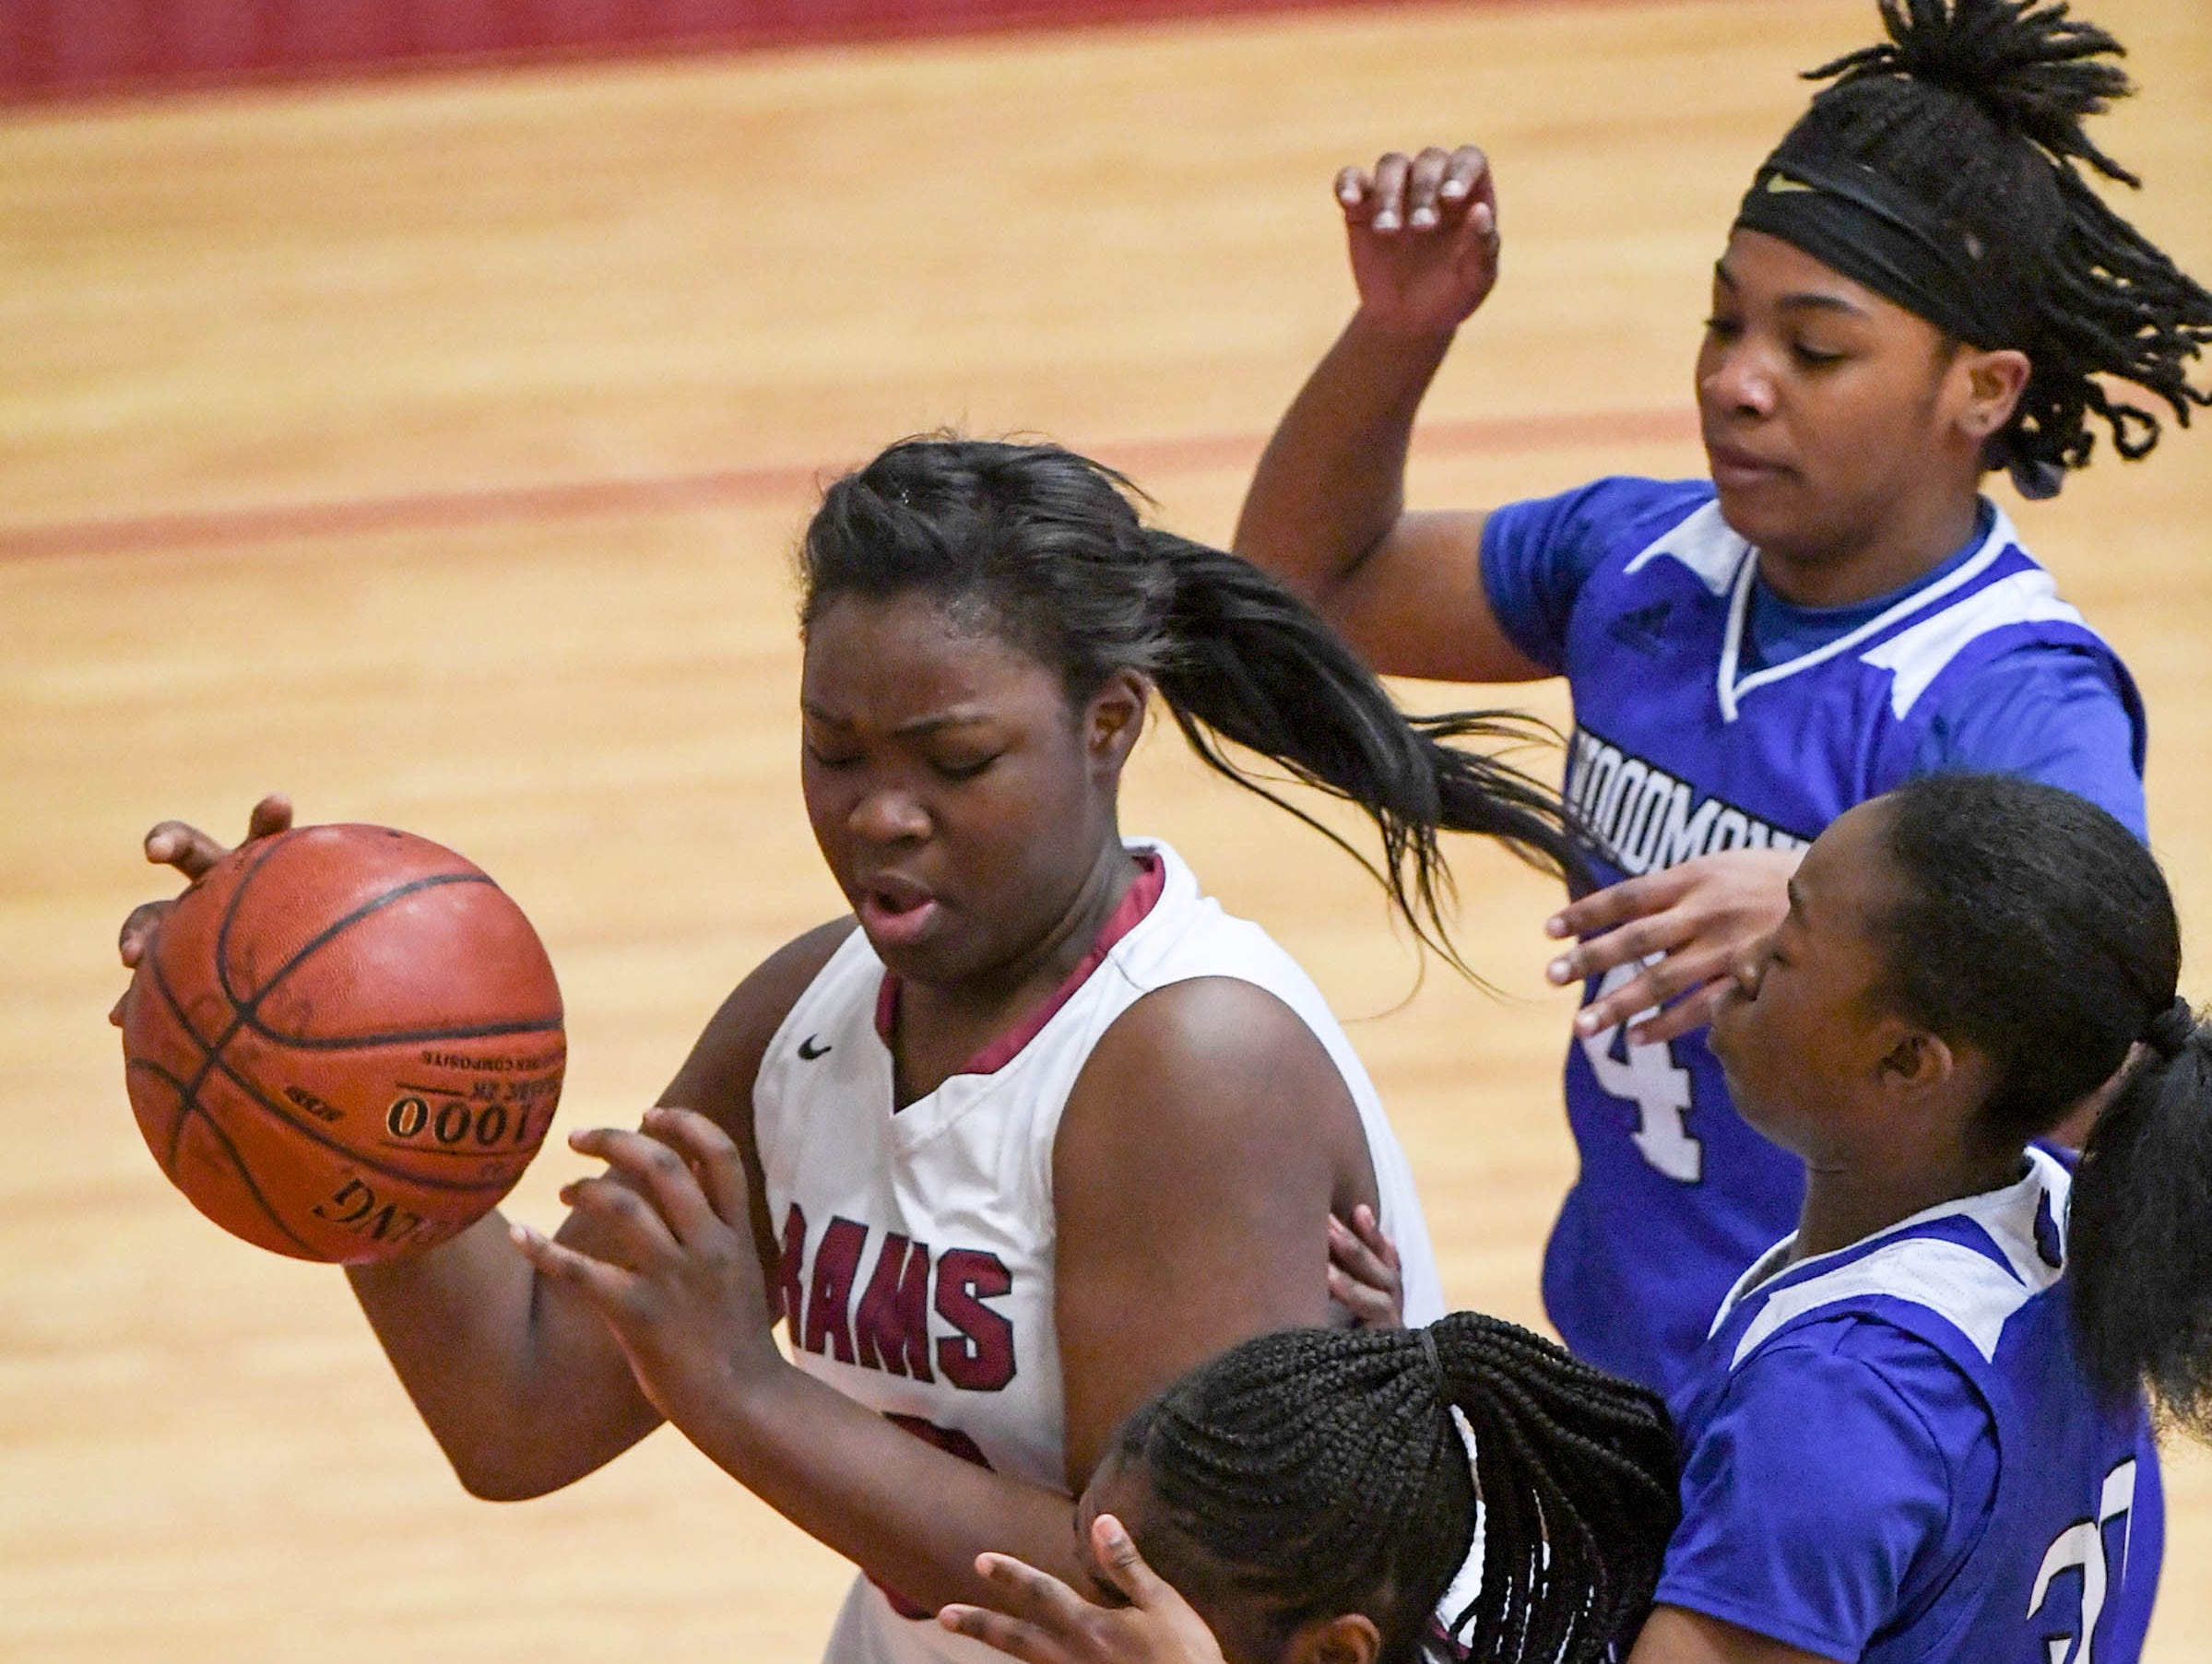 Westside sophomore Chyna Dixon(22) controls the ball near Woodmont junior JaRae Smith(30) during the first quarter at Westside High School in Anderson on Tuesday.